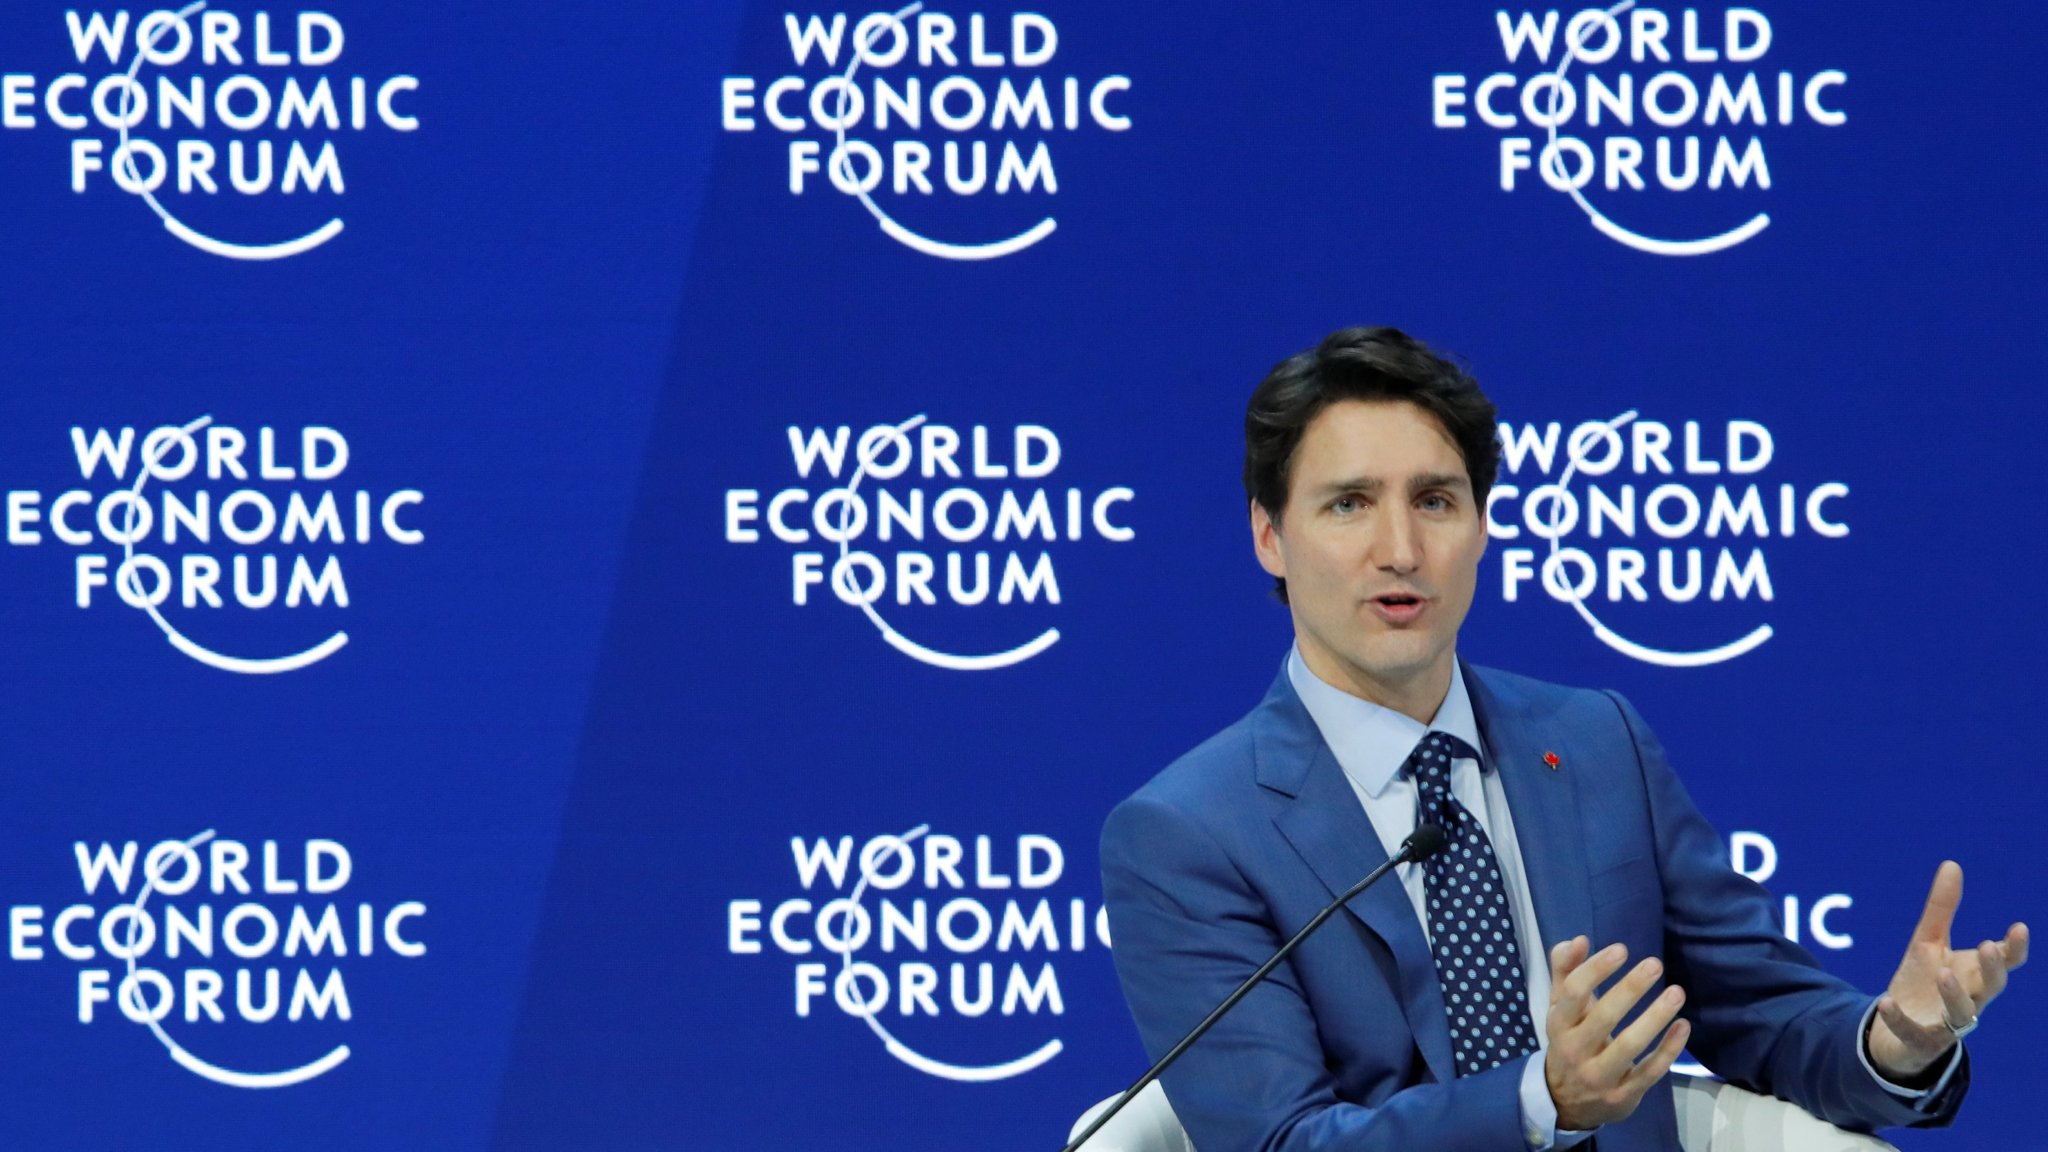 Trudeau tells Davos audience their approach 'won't cut it any more'